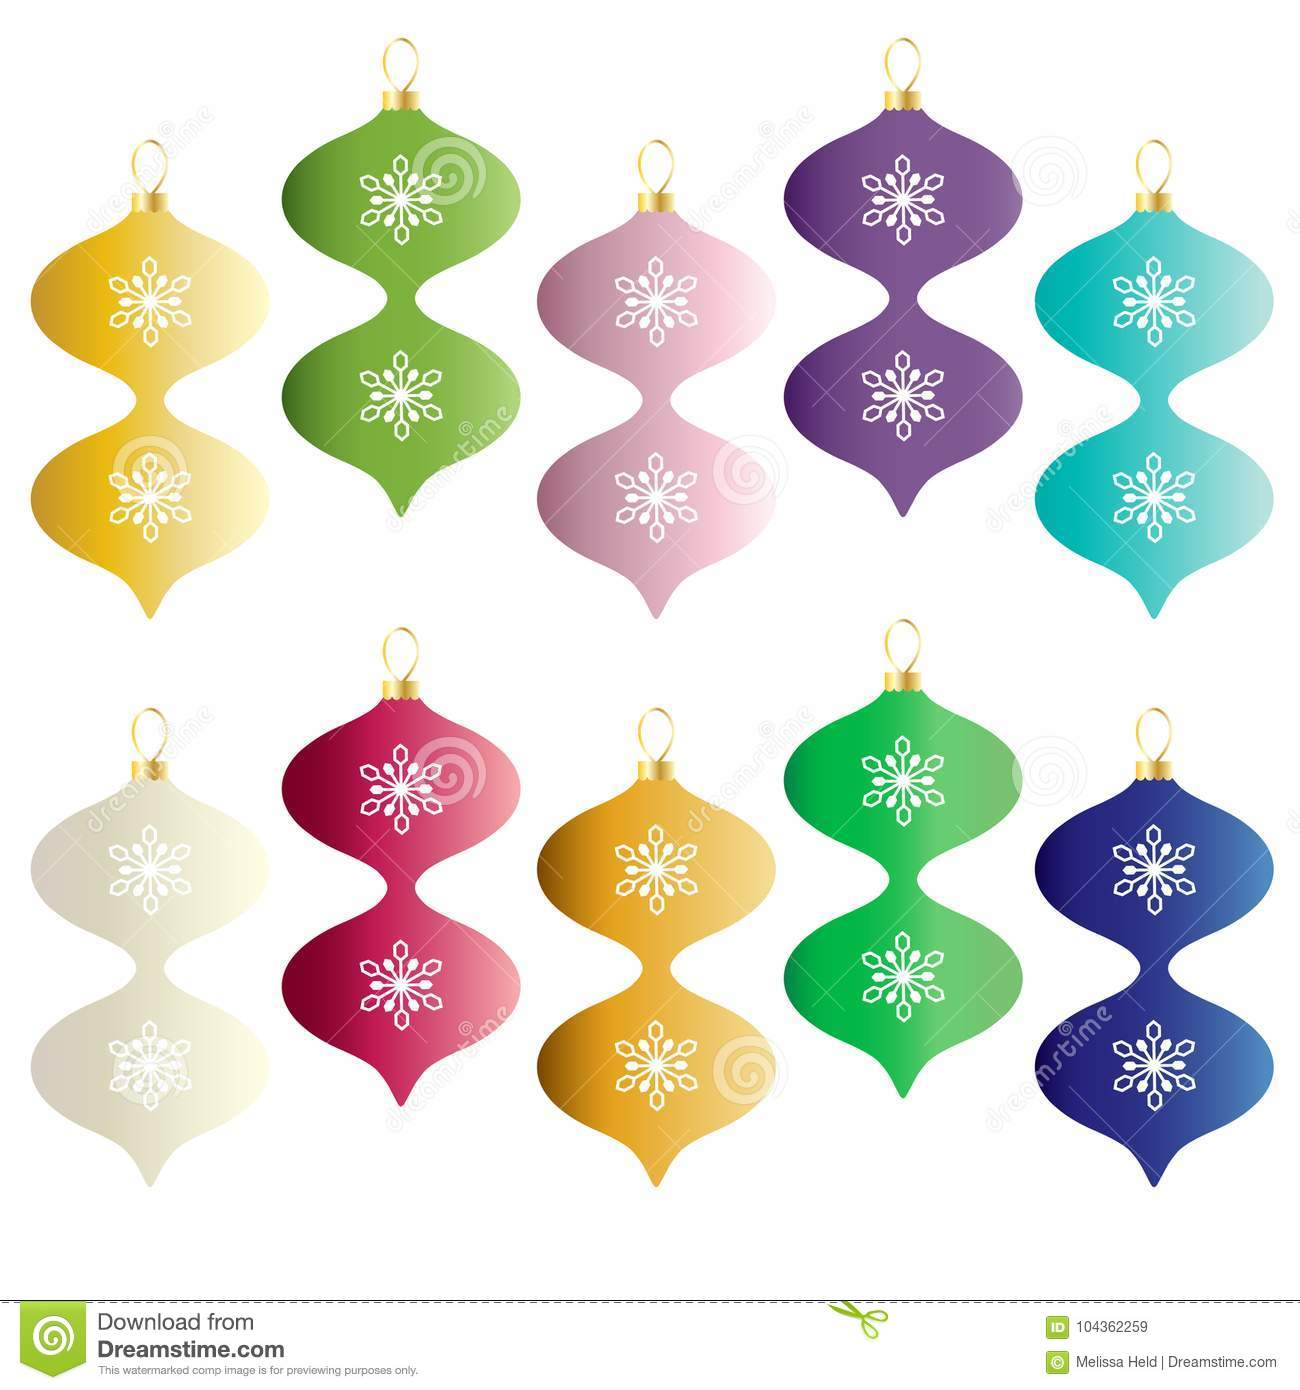 colorful gradient christmas ornaments - Christmas Ornaments Clipart